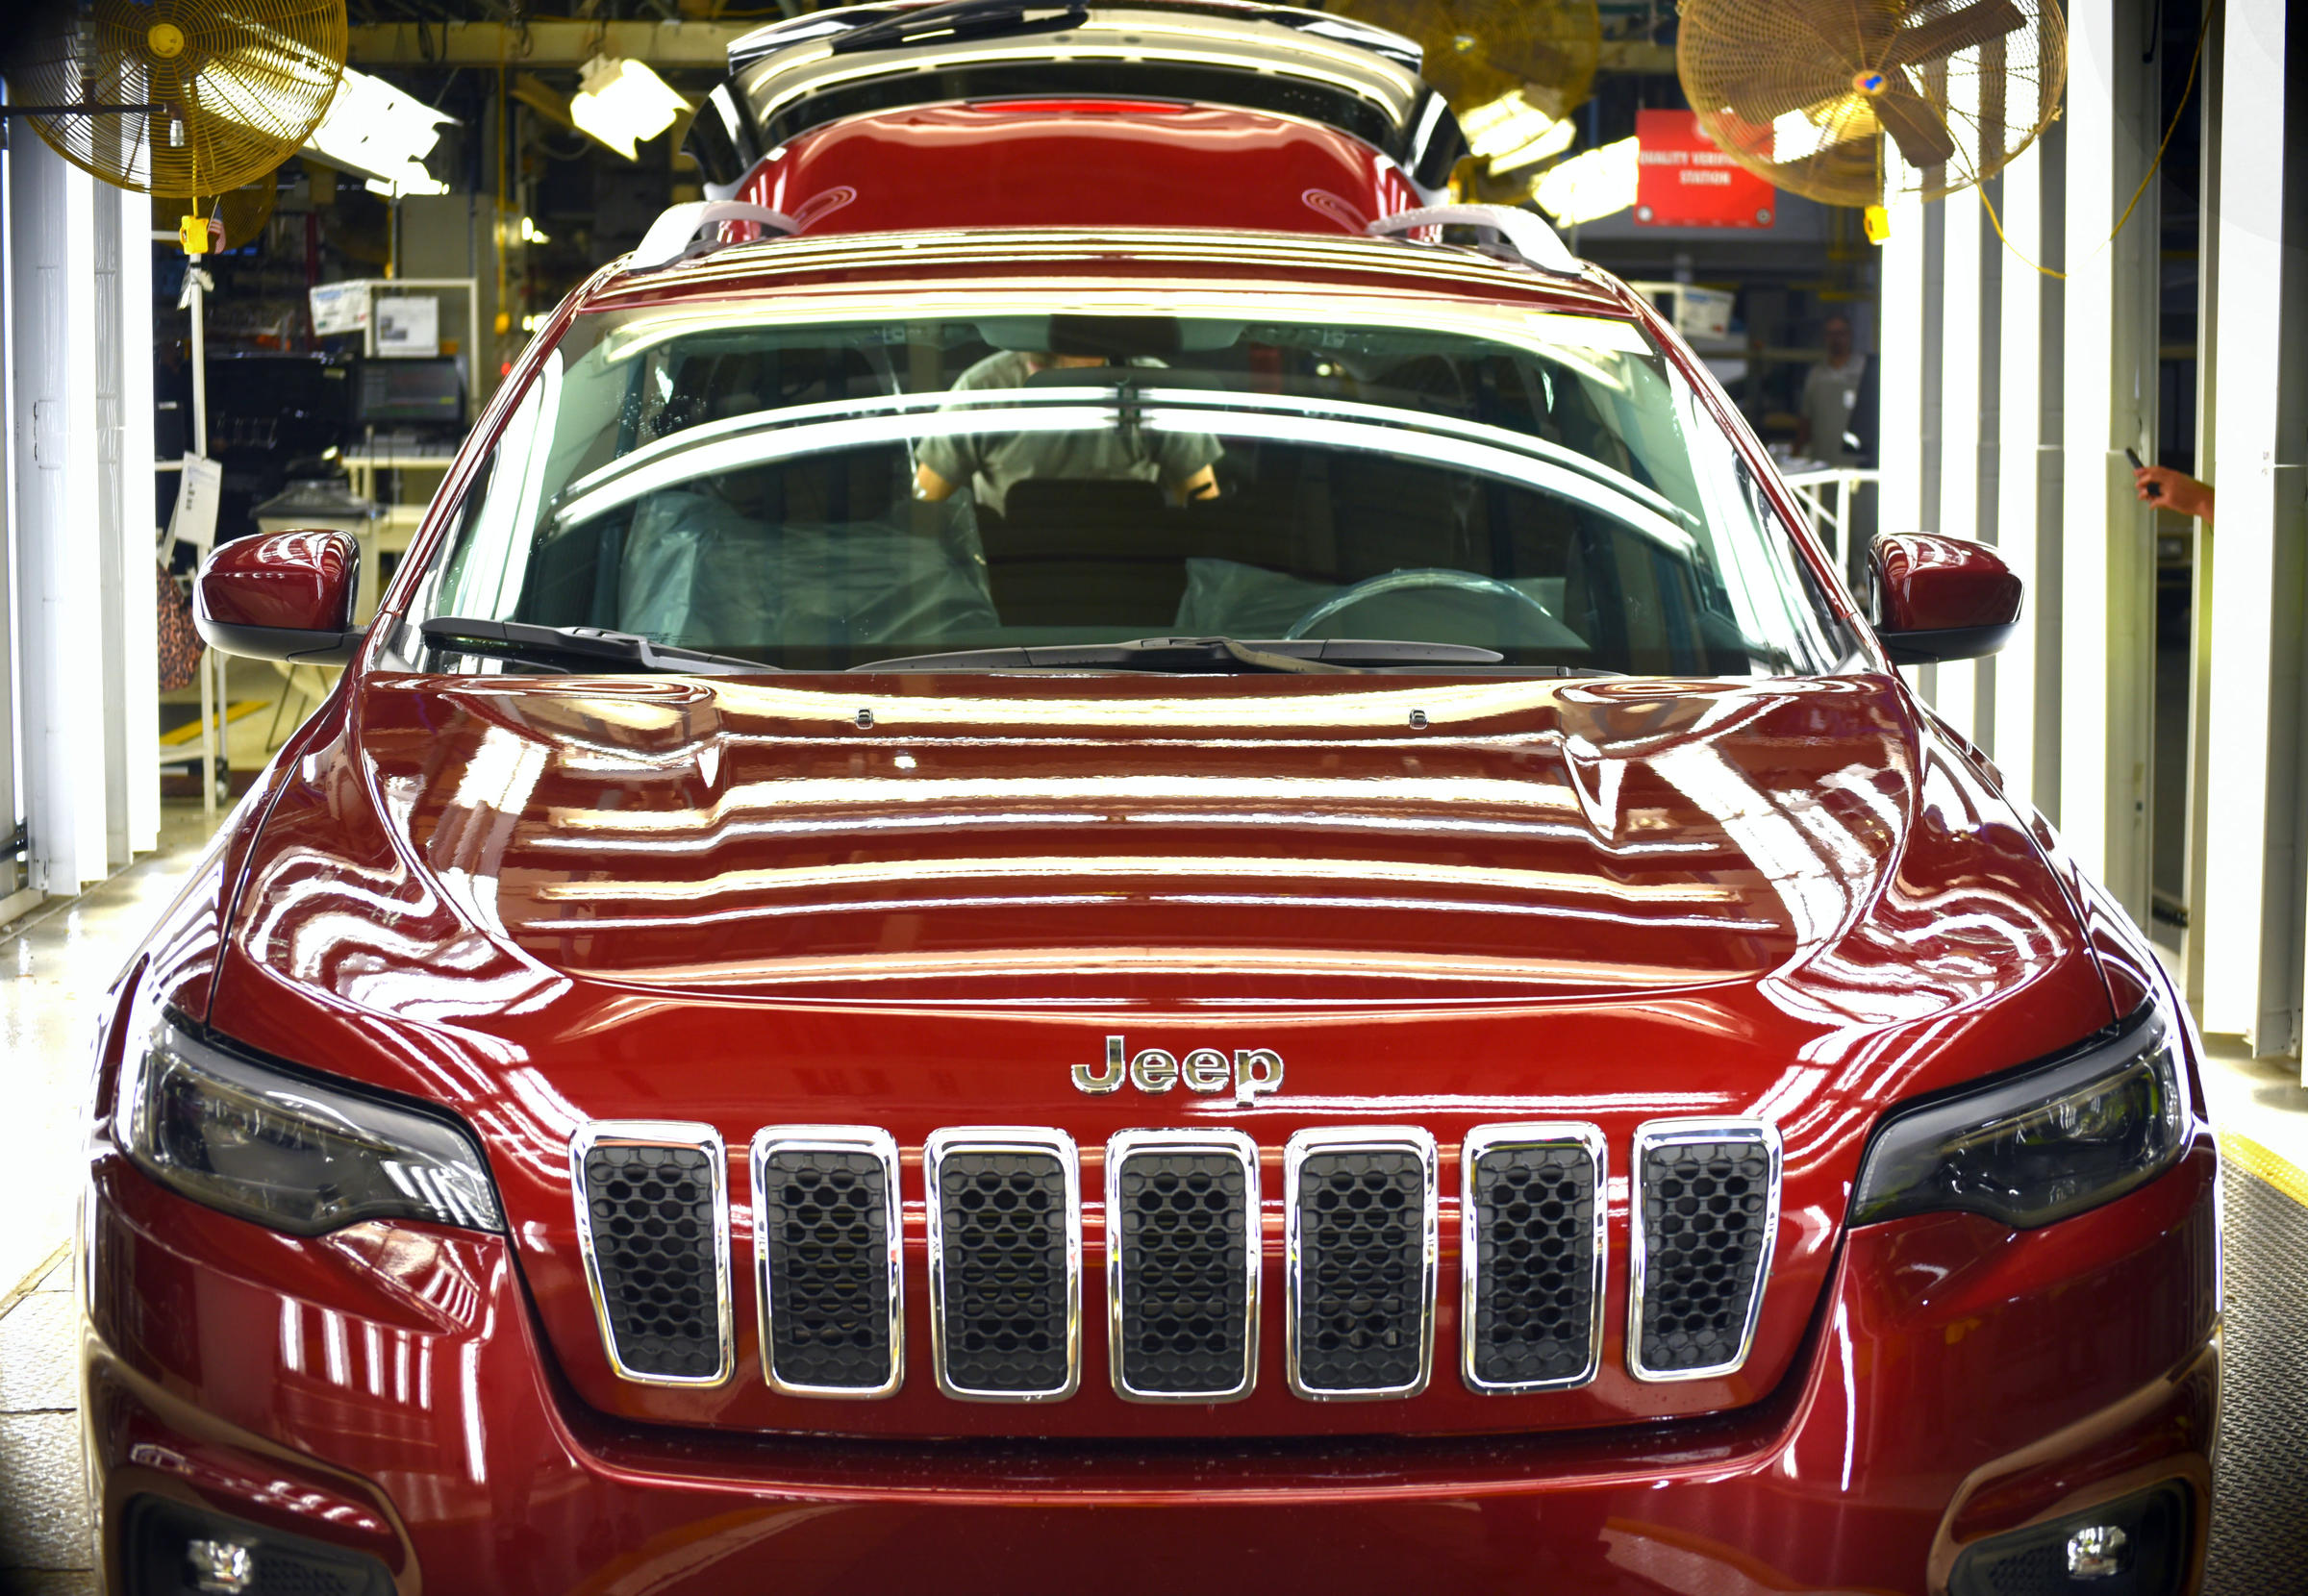 List Of American Cars: Car Made In Belvidere Tops List Of 'Most American' Cars